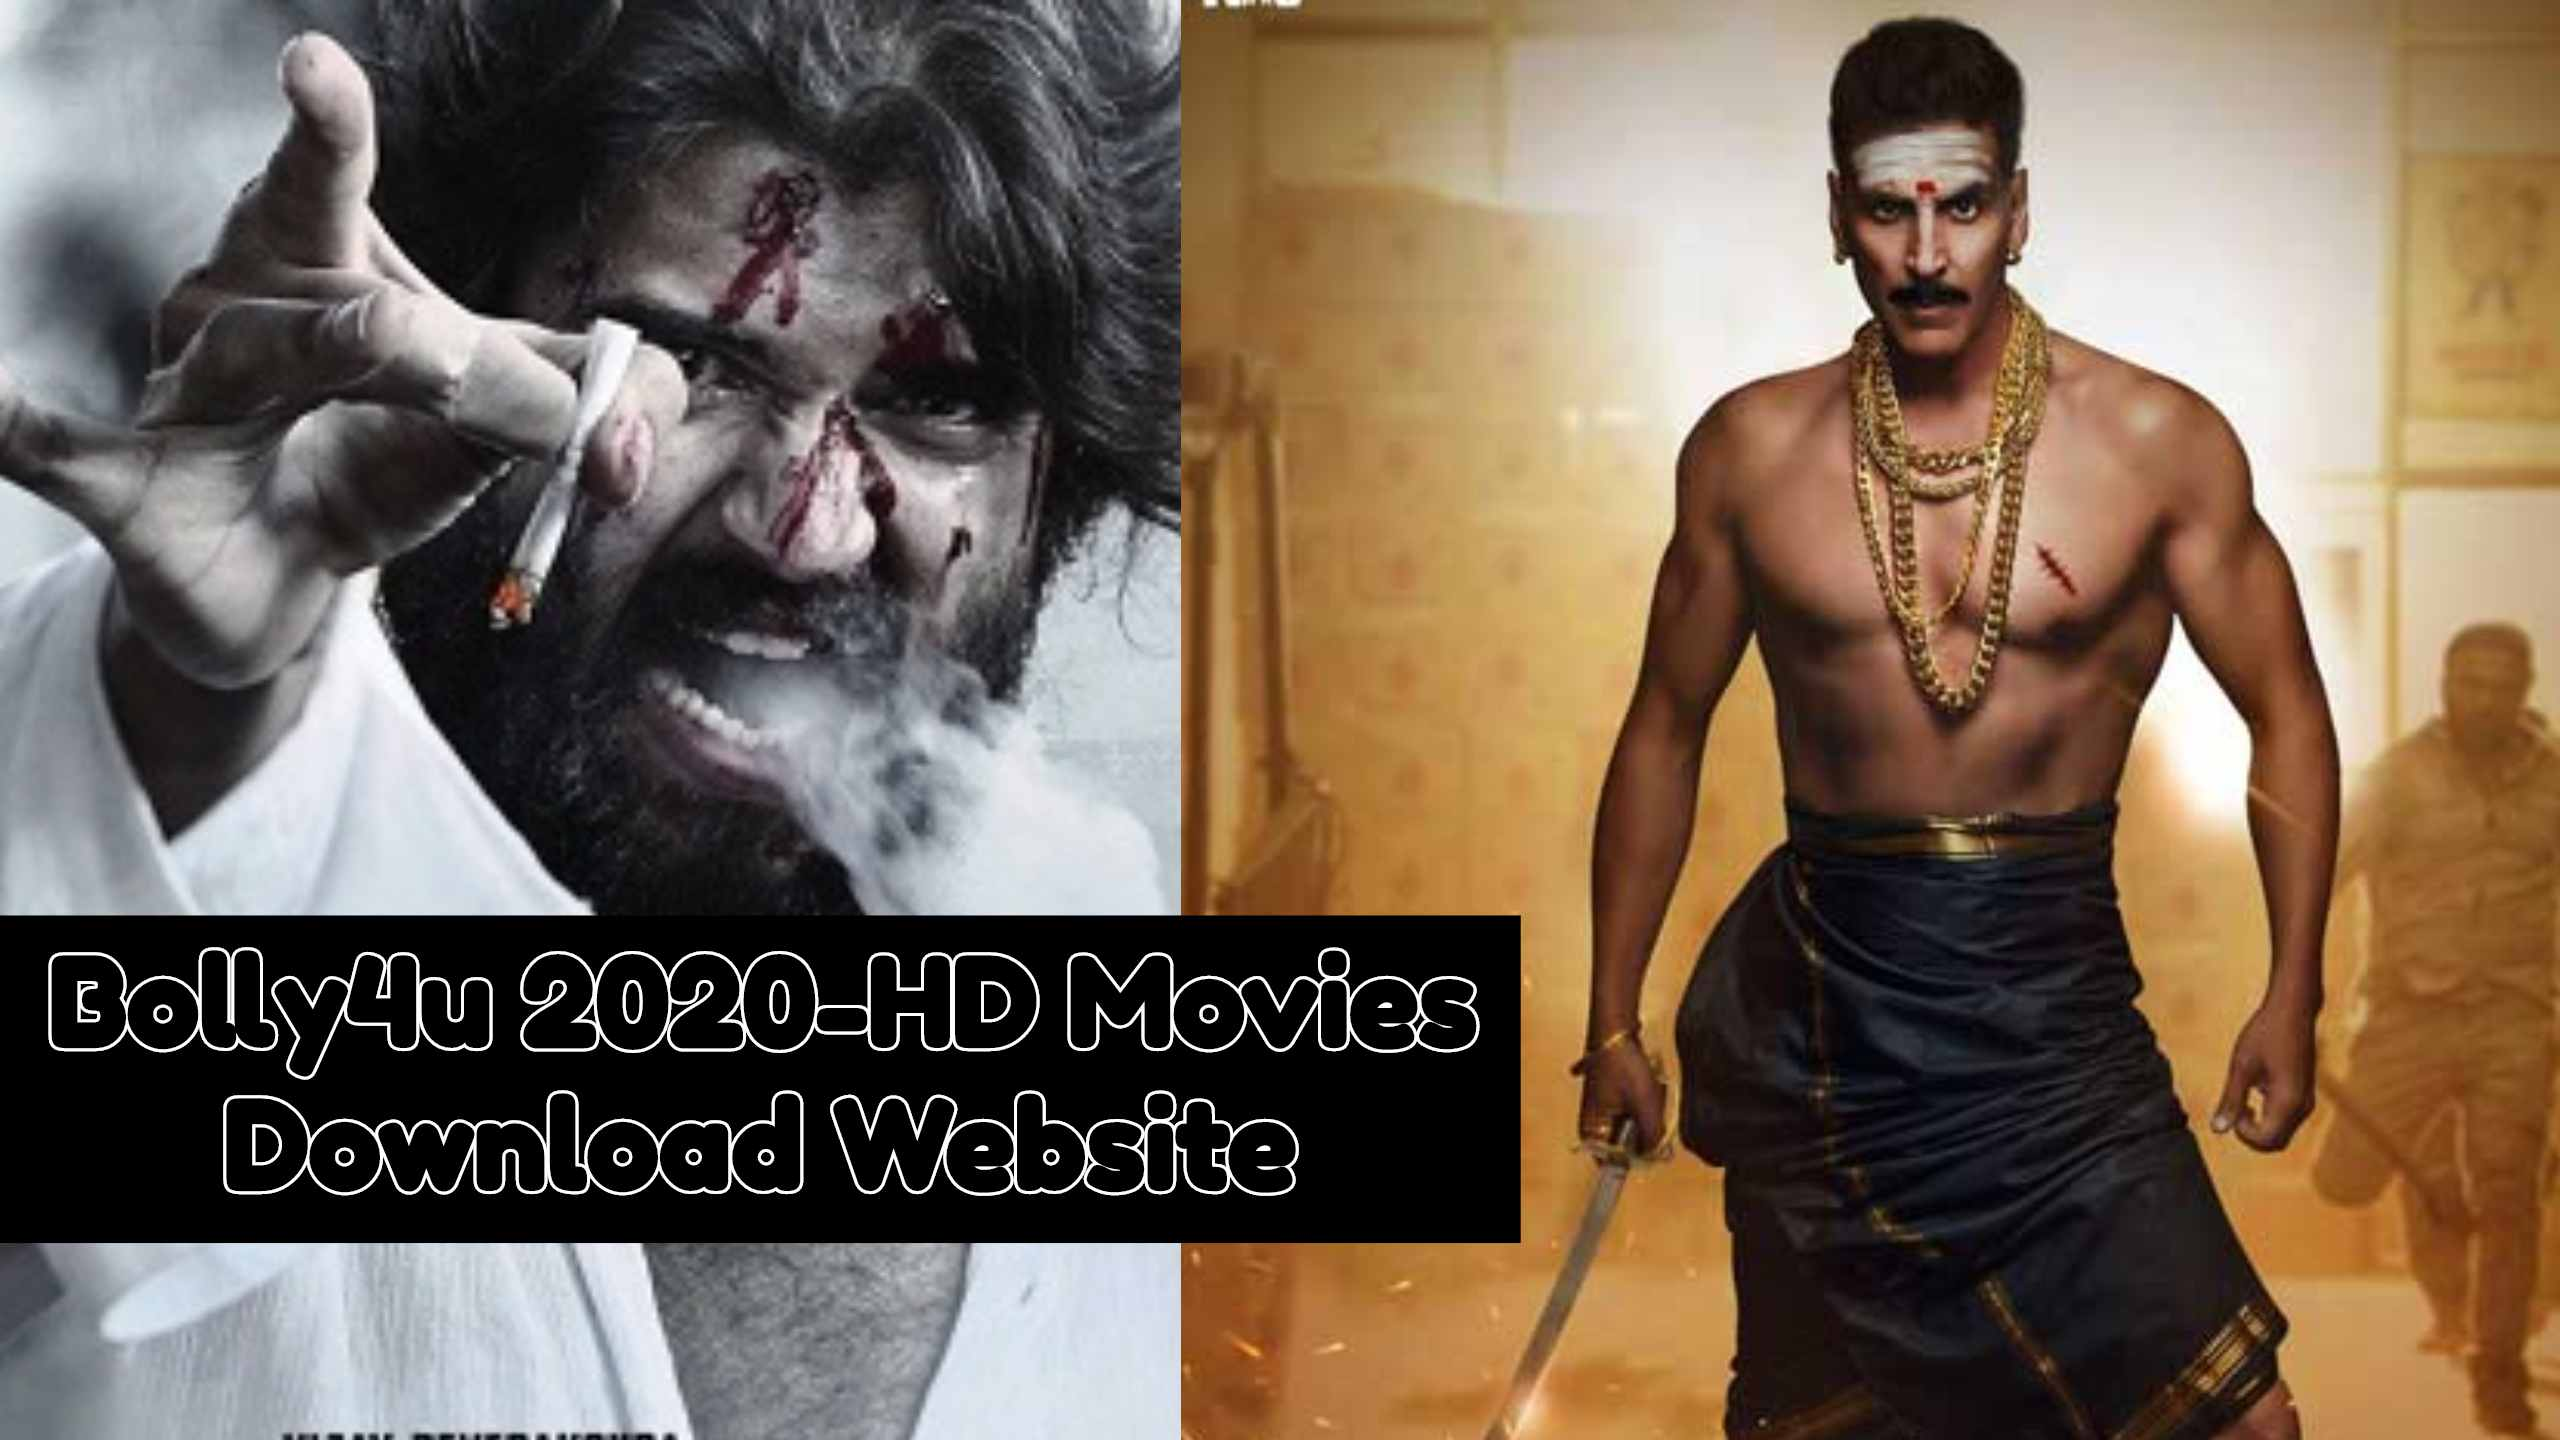 Bolly4u 2020-HD Movies Download Website